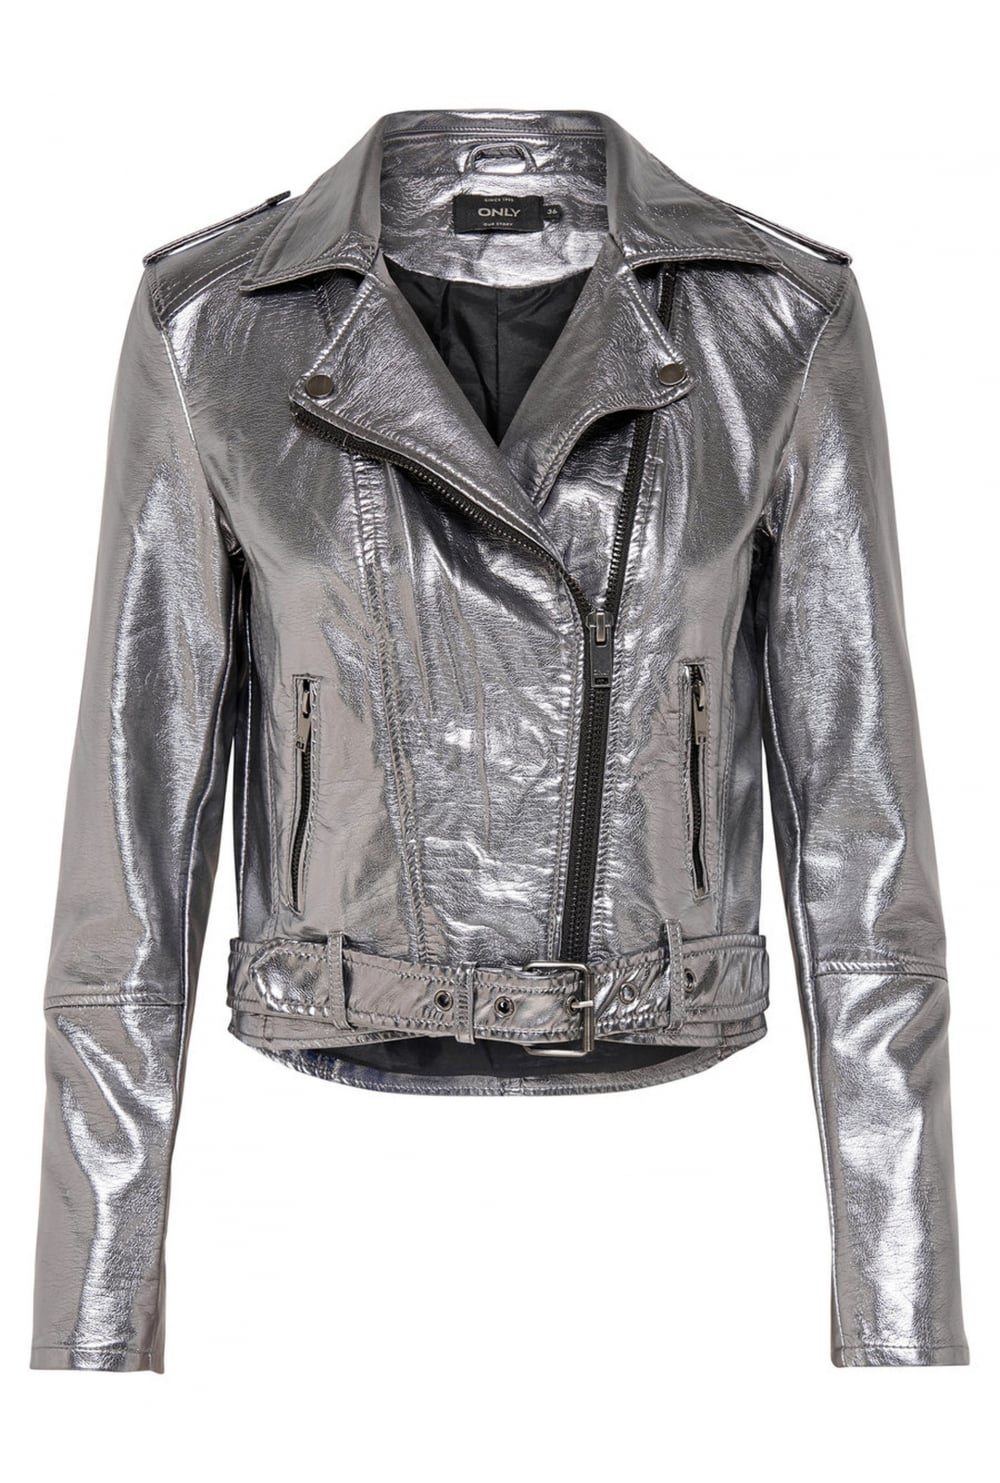 clearance sale online here authorized site Only Soft Faux Leather Silver Biker Jacket - Only from Ruby Room UK